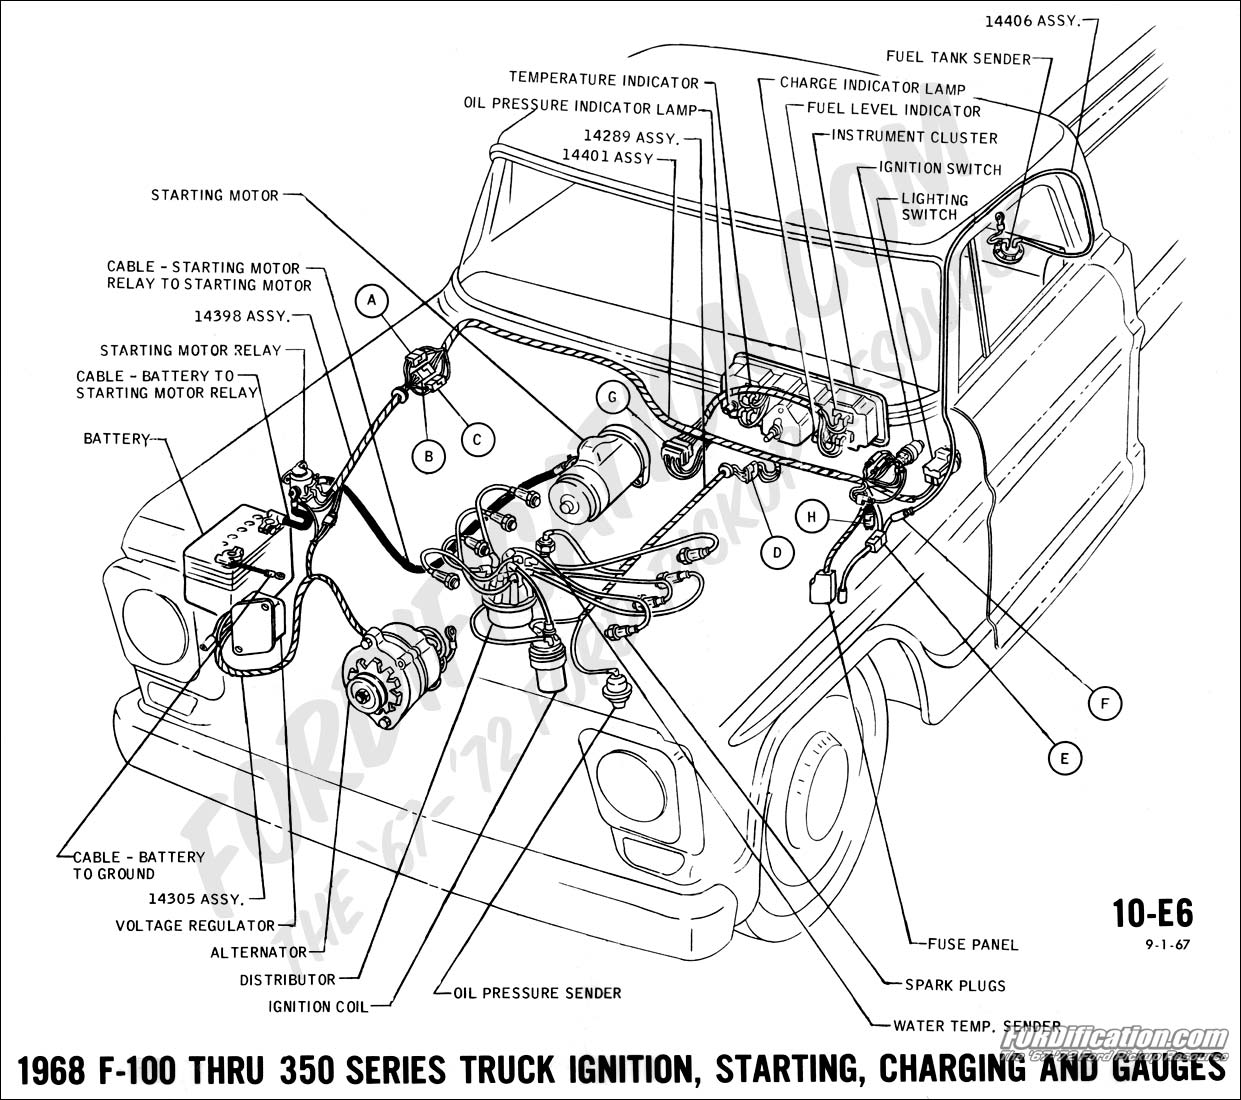 1986 Ford 7 Pin Trailer Wiring Harness Archive Of Automotive F 150 Diagram Images Gallery Truck Technical Drawings And Schematics Section H Rh Fordification Com